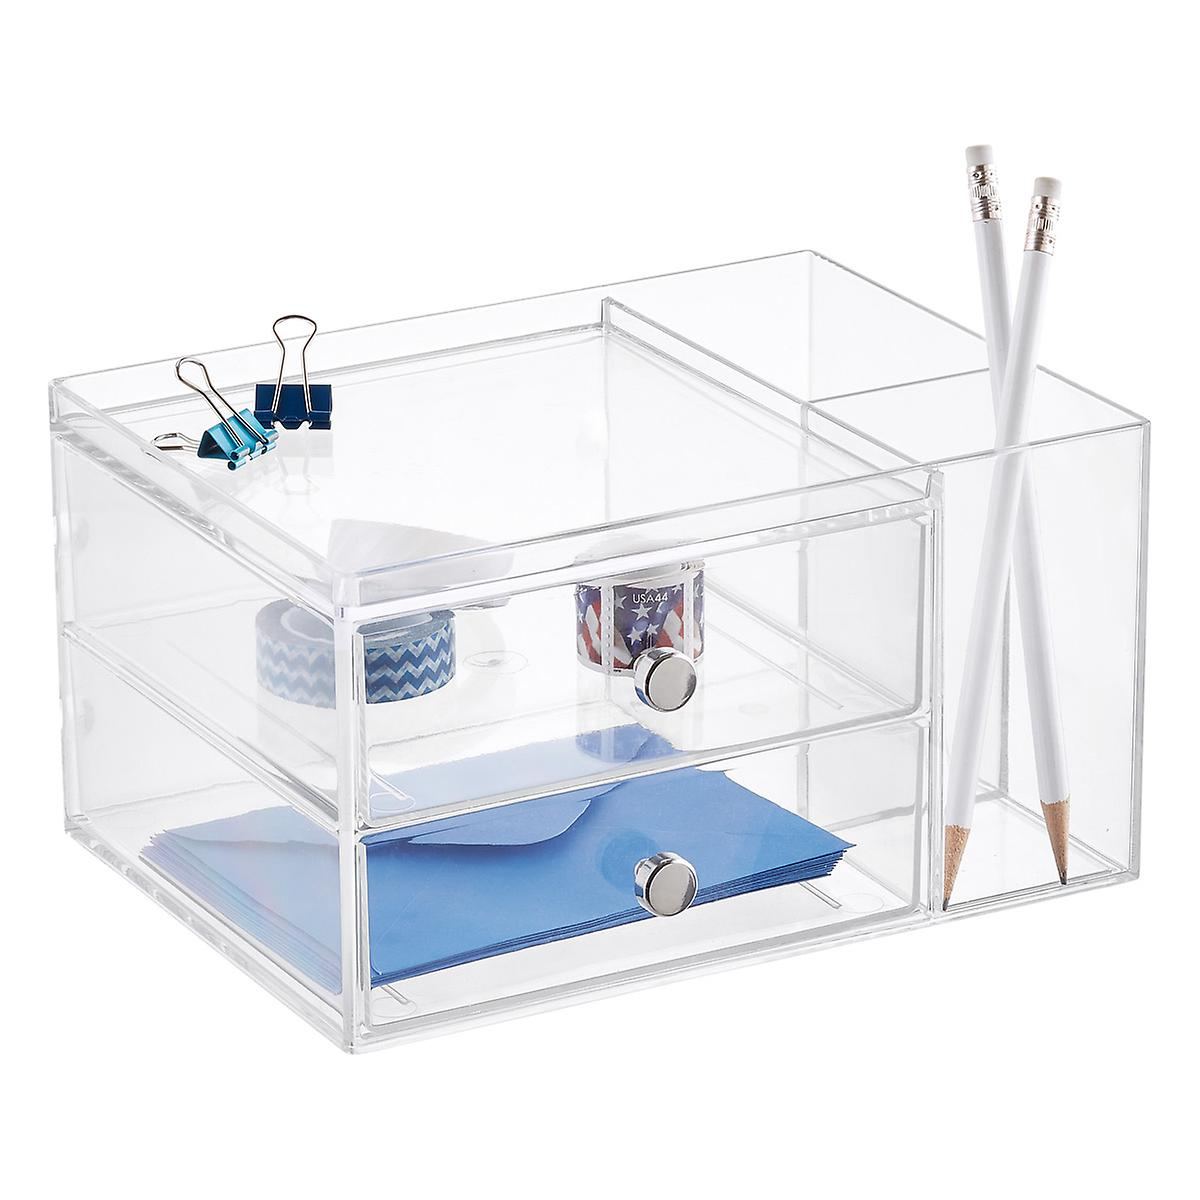 2-Drawer Desk Organizer